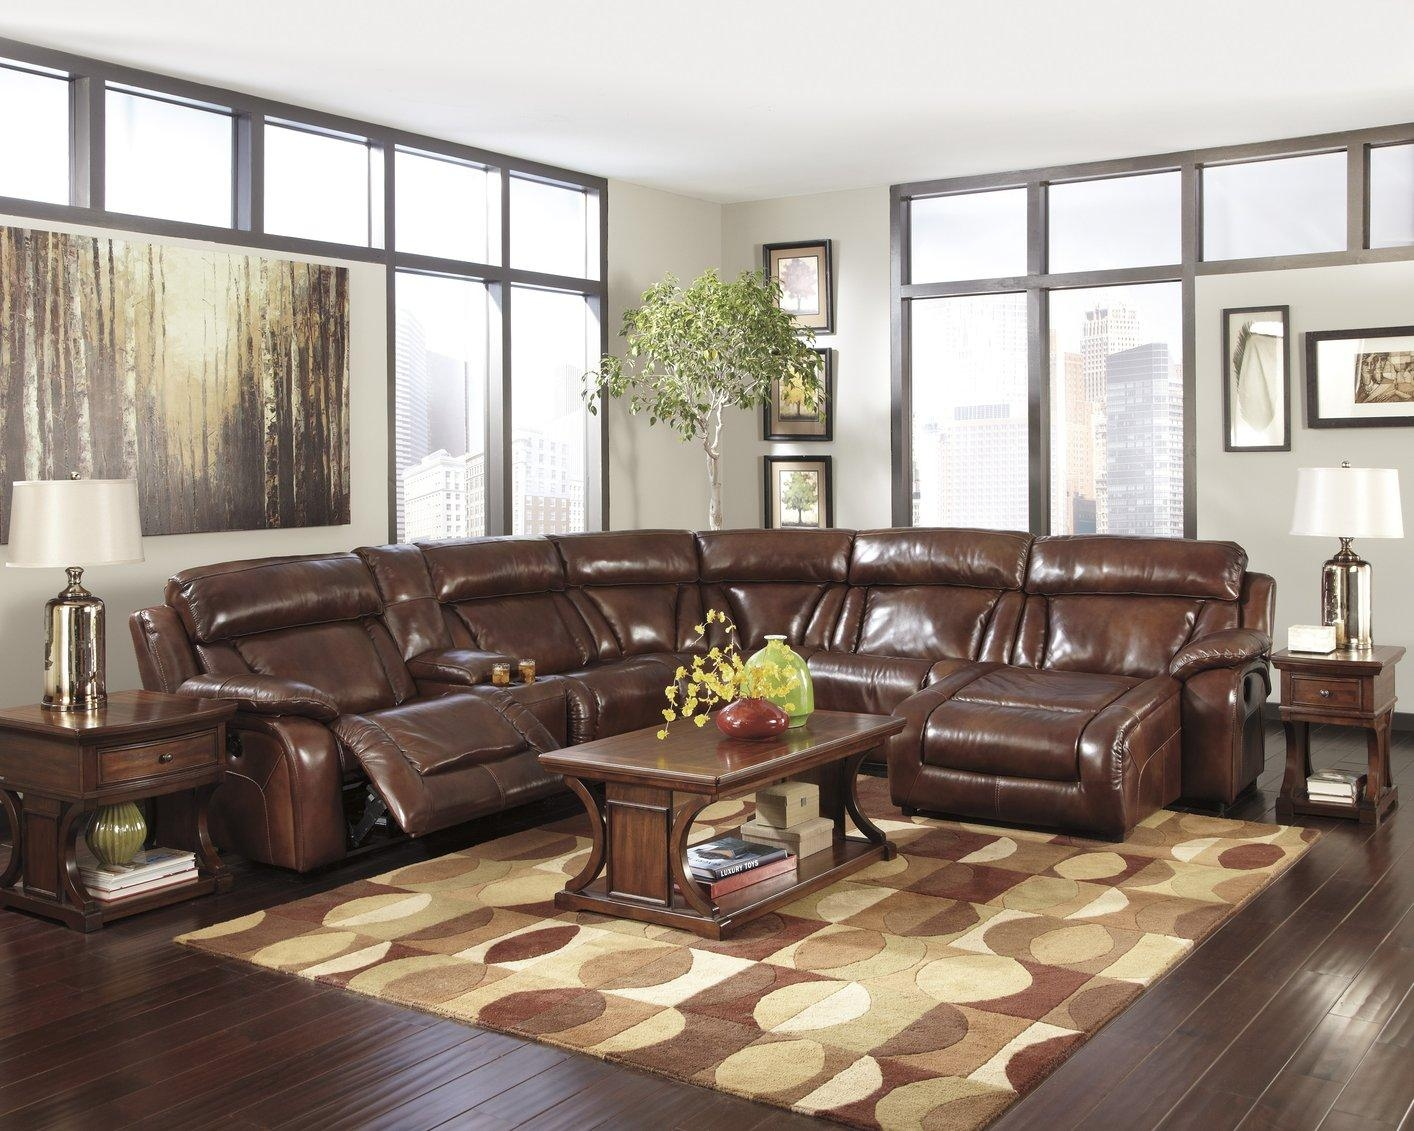 Sectional Sofa Clearance The Best Way To Get High Quality Sofa In For High Quality : quality leather sectionals - Sectionals, Sofas & Couches